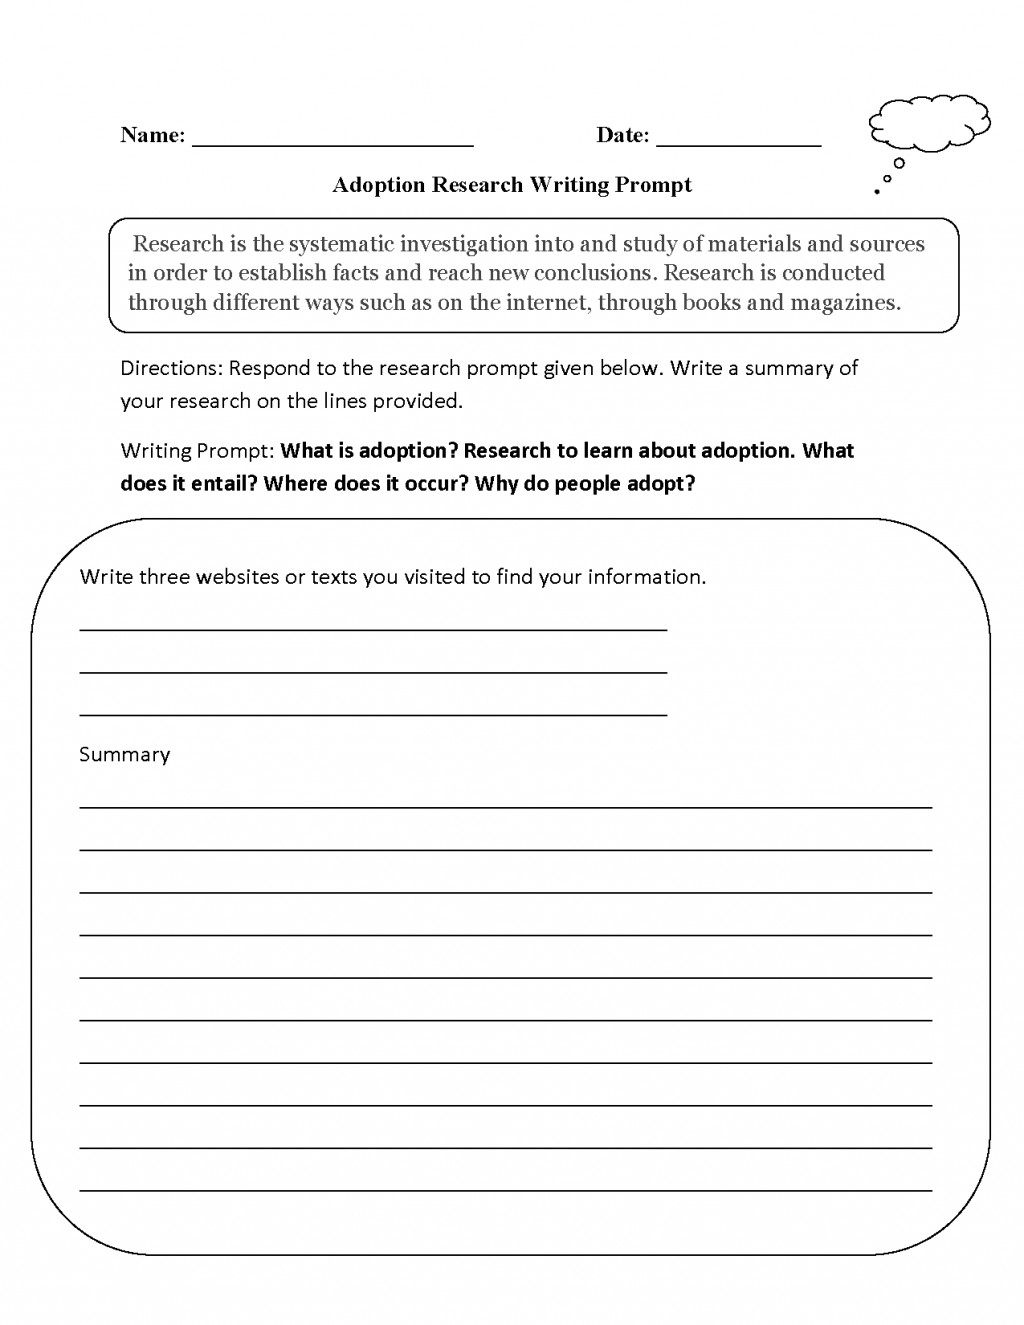 013 6th Grade Essay Topics Example Persuasive Personal For Graders Research Adoption Work Argumentative Prompts Students Speech Surprising Reflective Narrative Writing Science Large